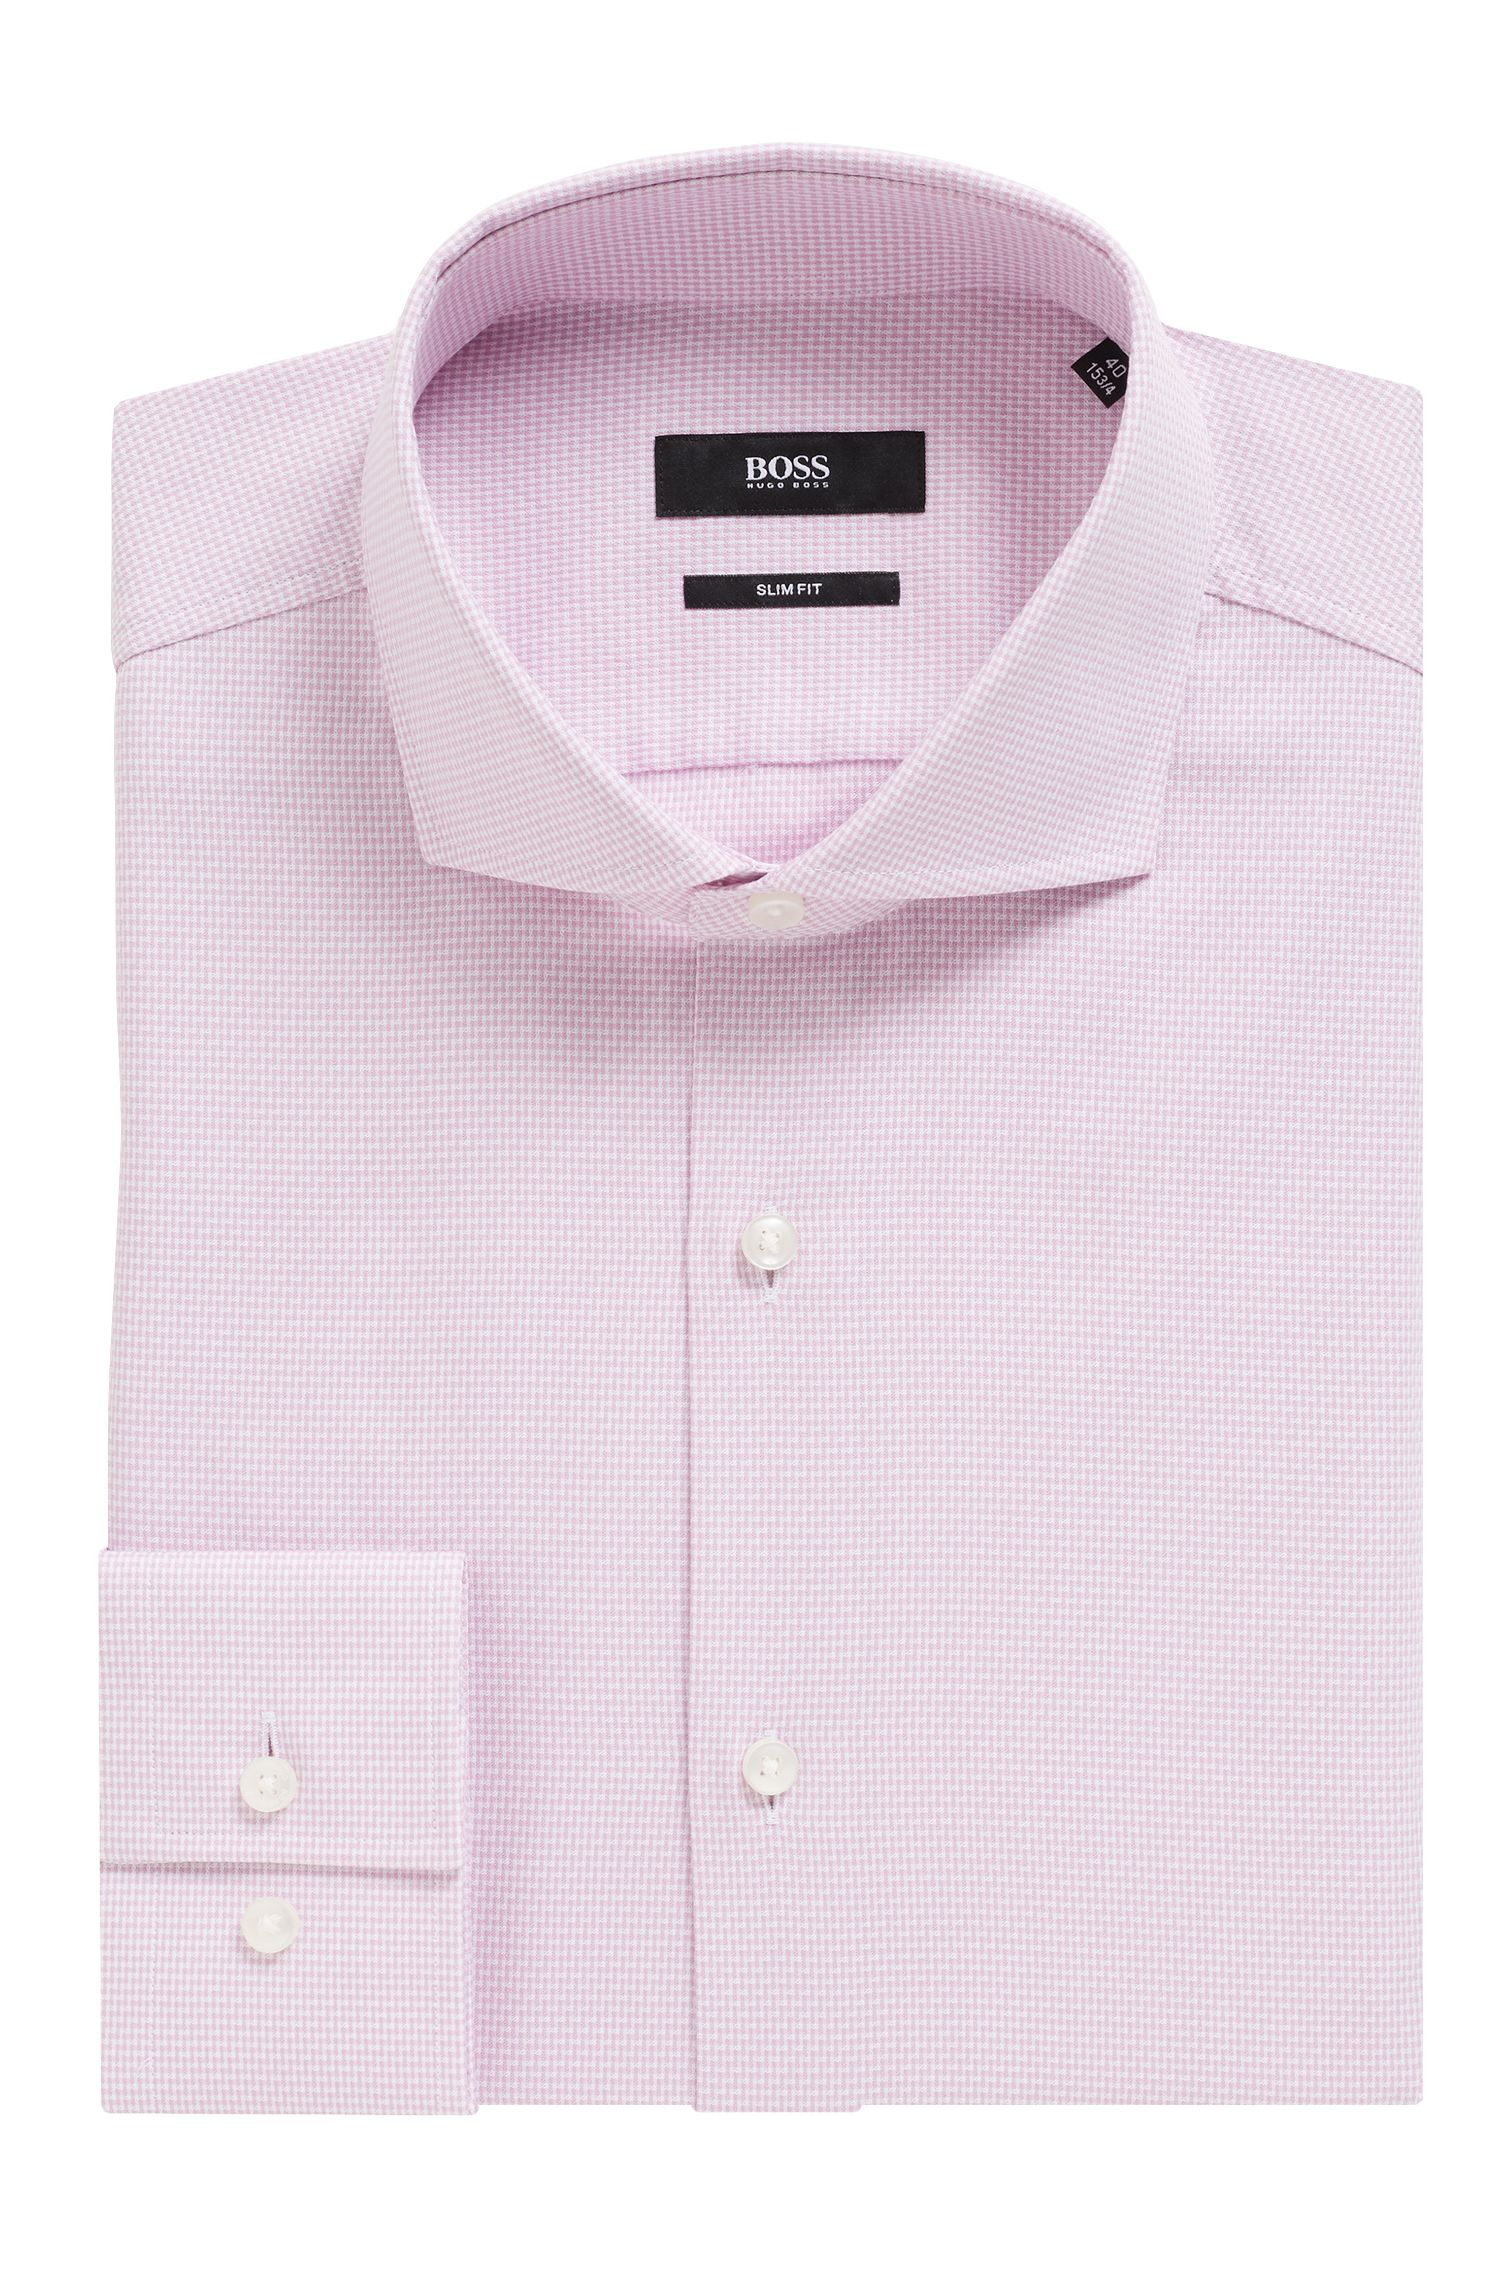 Slim-fit shirt in cotton with micro structure, light pink